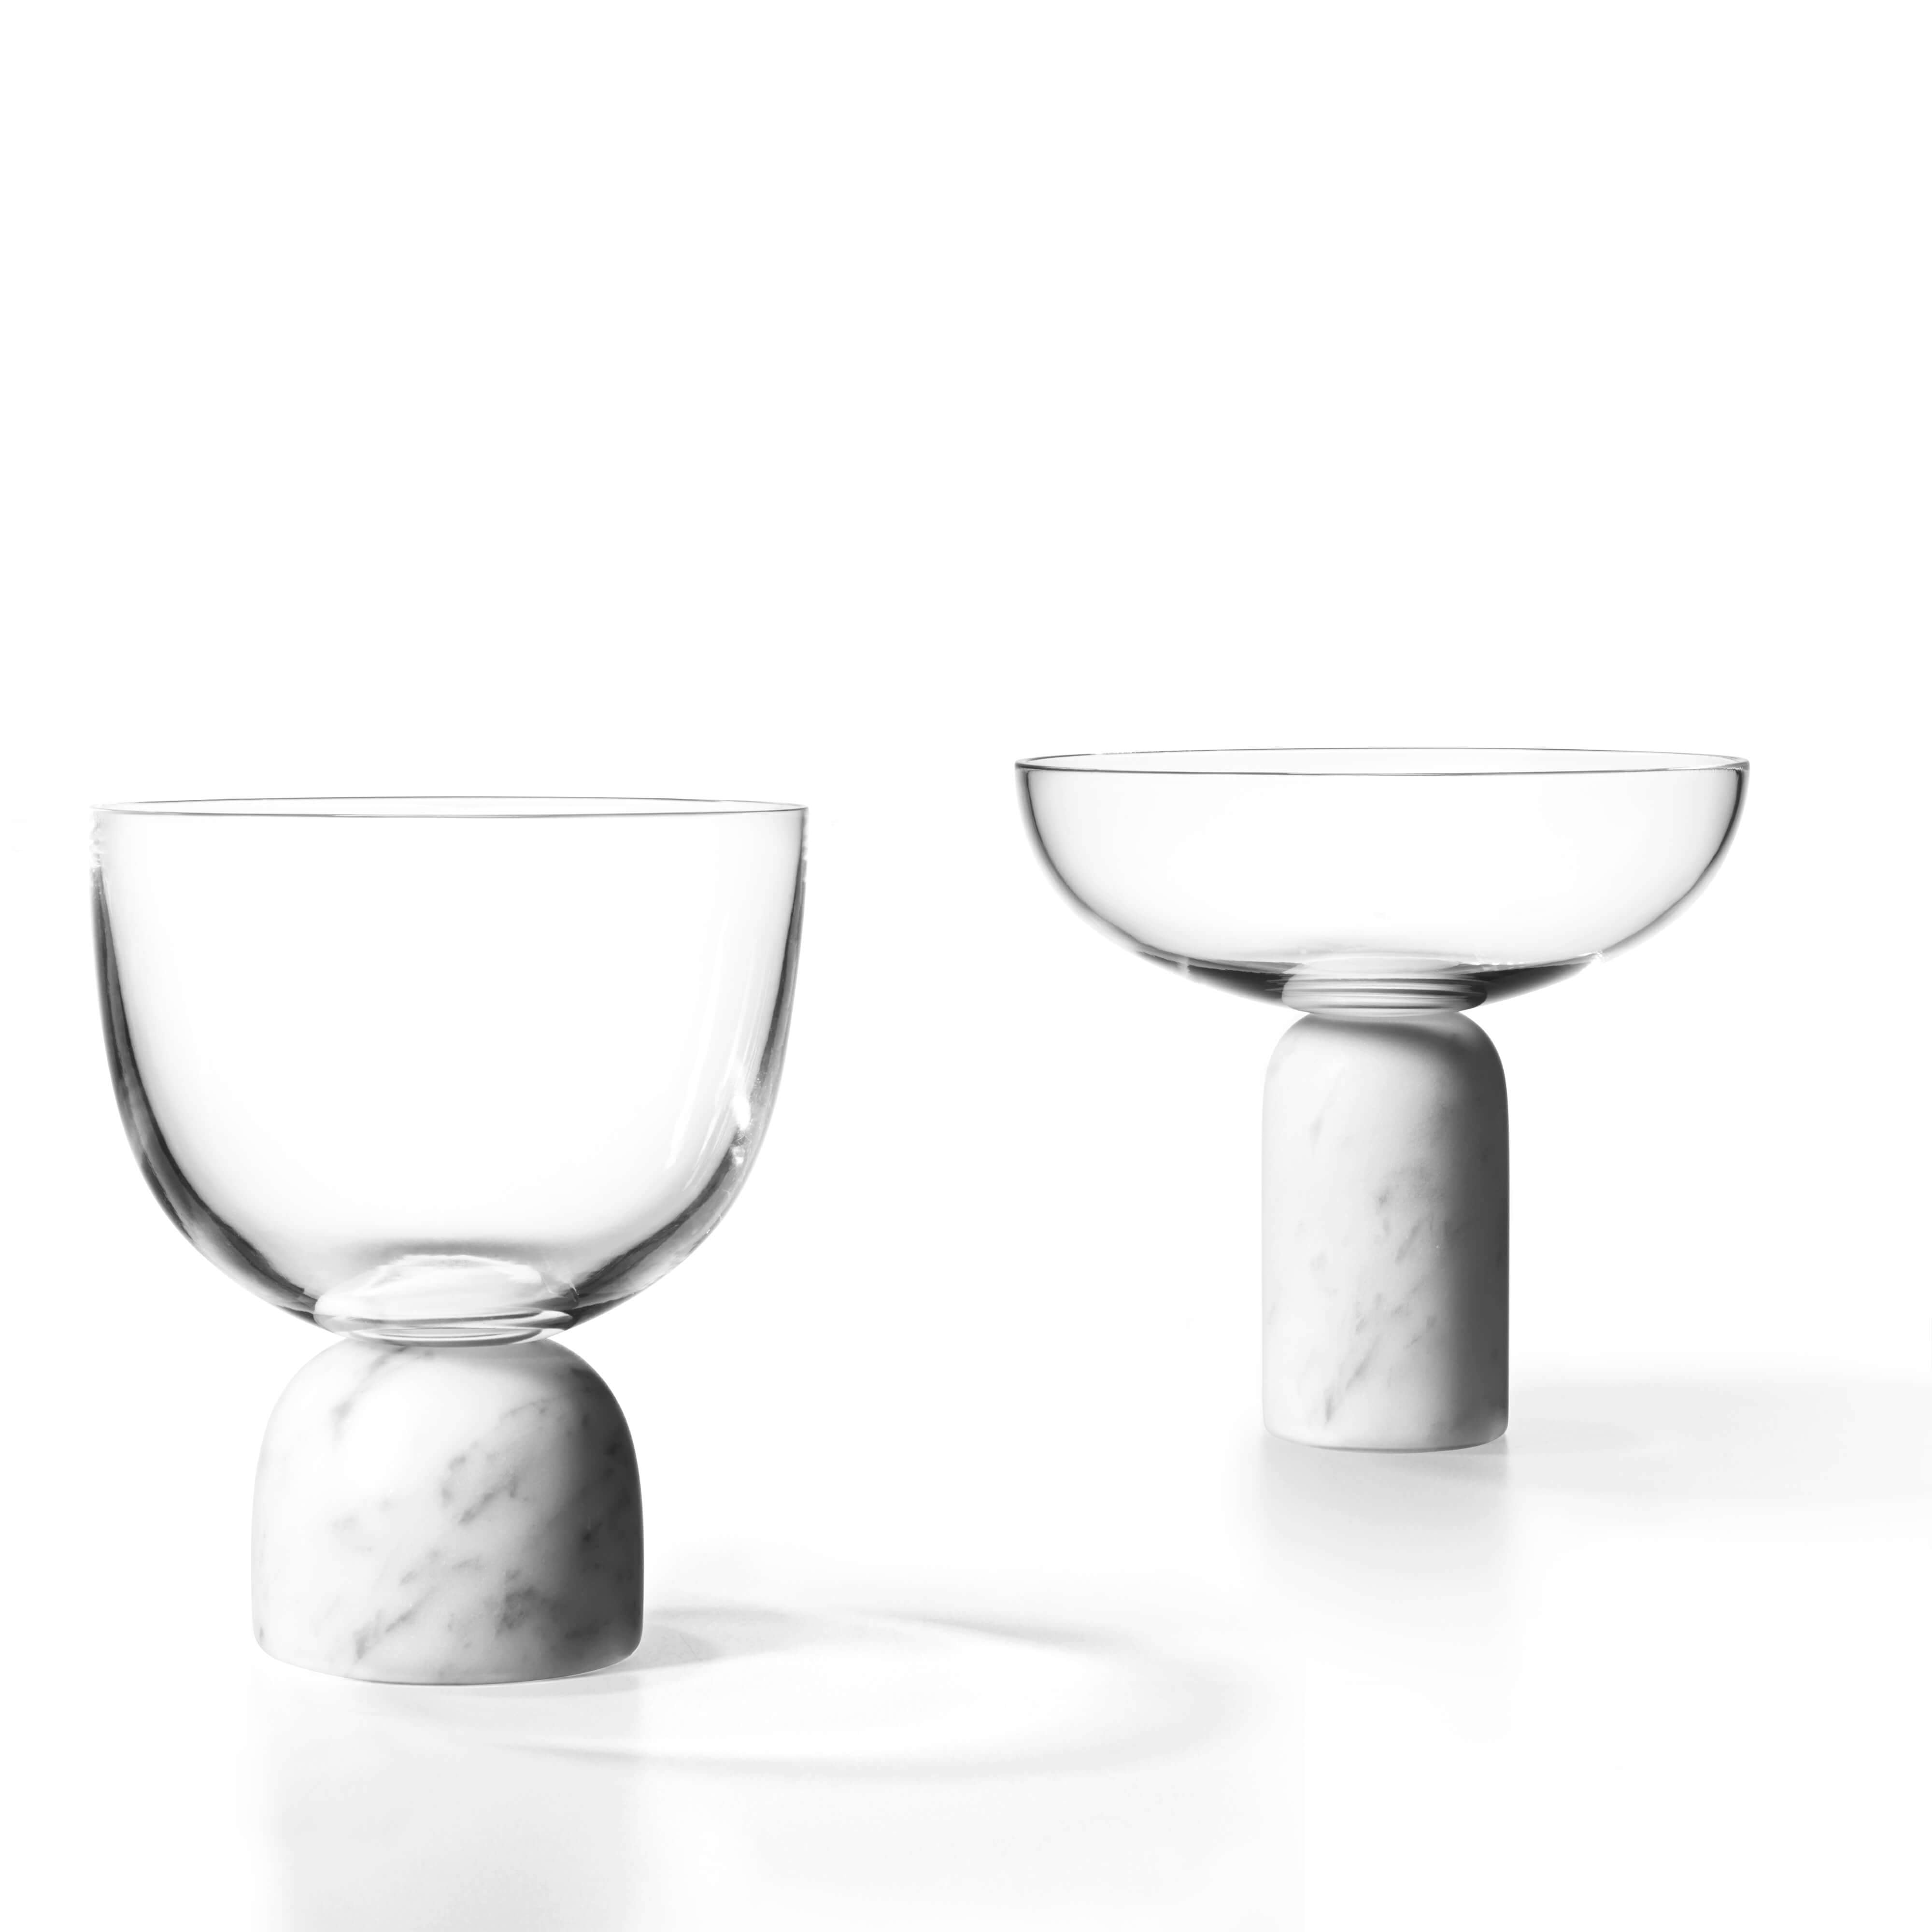 On The Rock Glassware: Wine Glass + Champagne Coupe